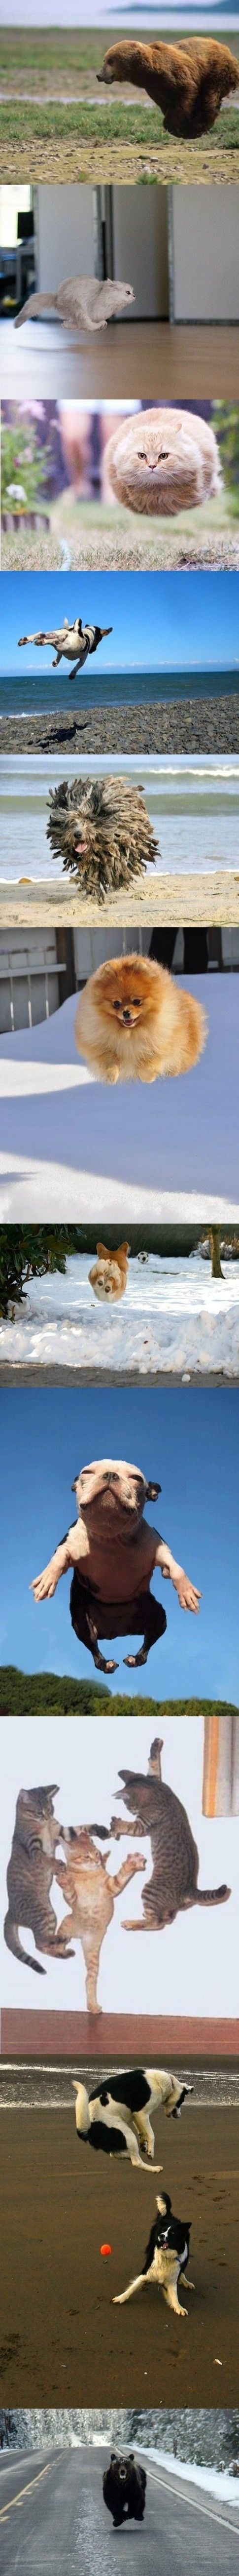 Airborne Pets & Animals. #pets #animals #funnypets: Cat, Hover Animals, Funny Stuff, Hoveranimals, Things, Funny Animal, Flying Animals, Smile